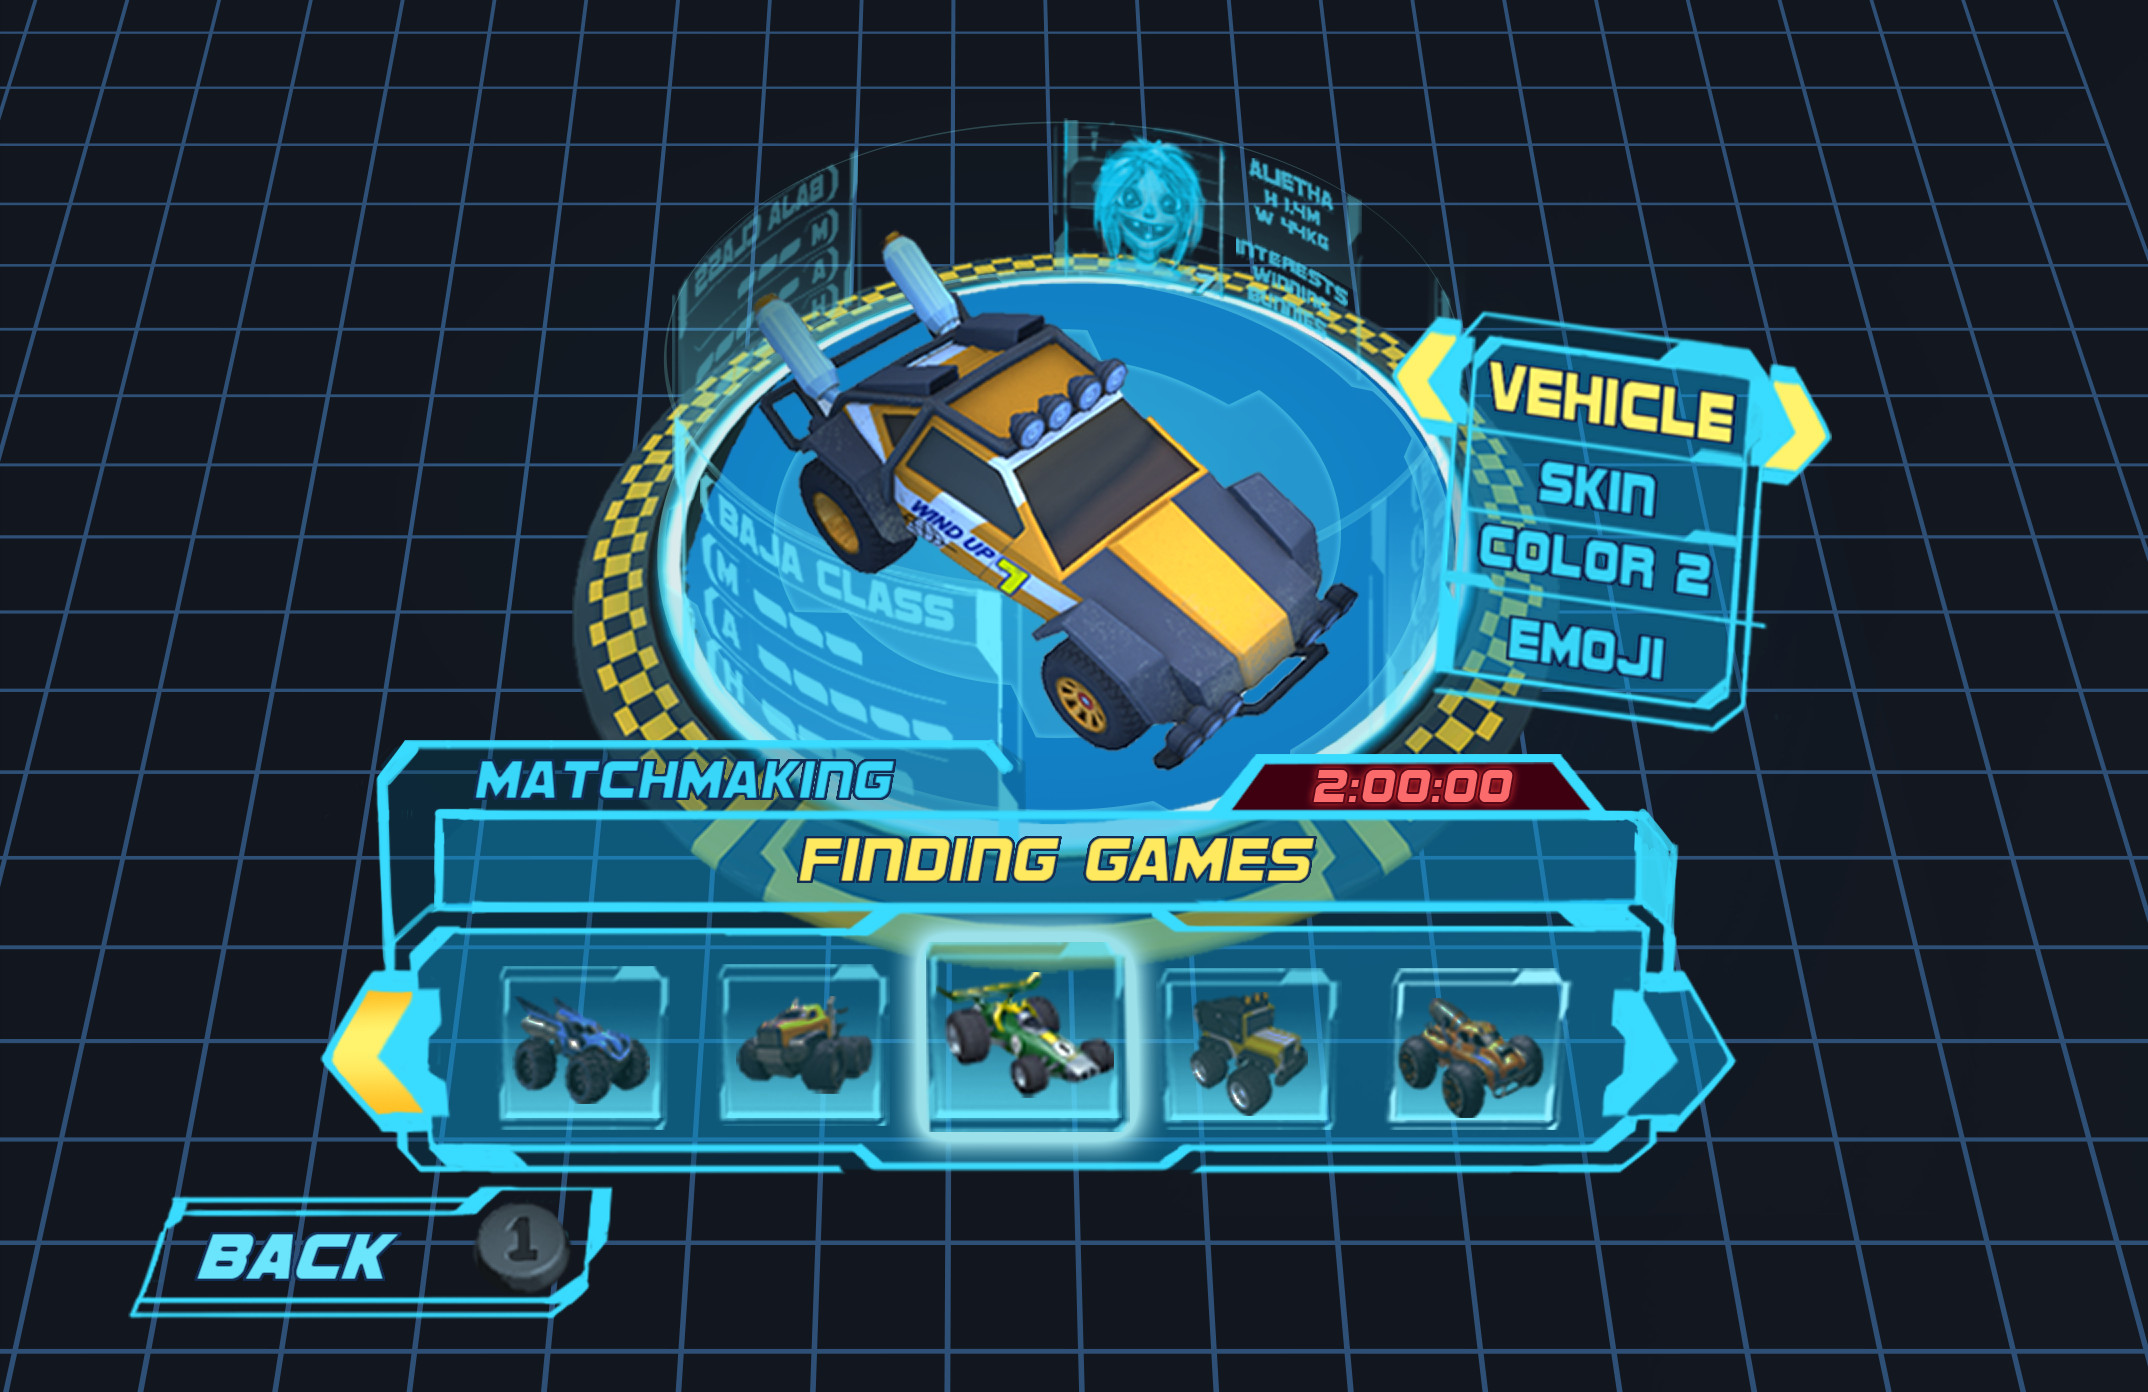 Multiplayer Vehicle Select/Customization with Matchmaking feature. We wanted to give the players something to do while waiting for matchmaking to happen.